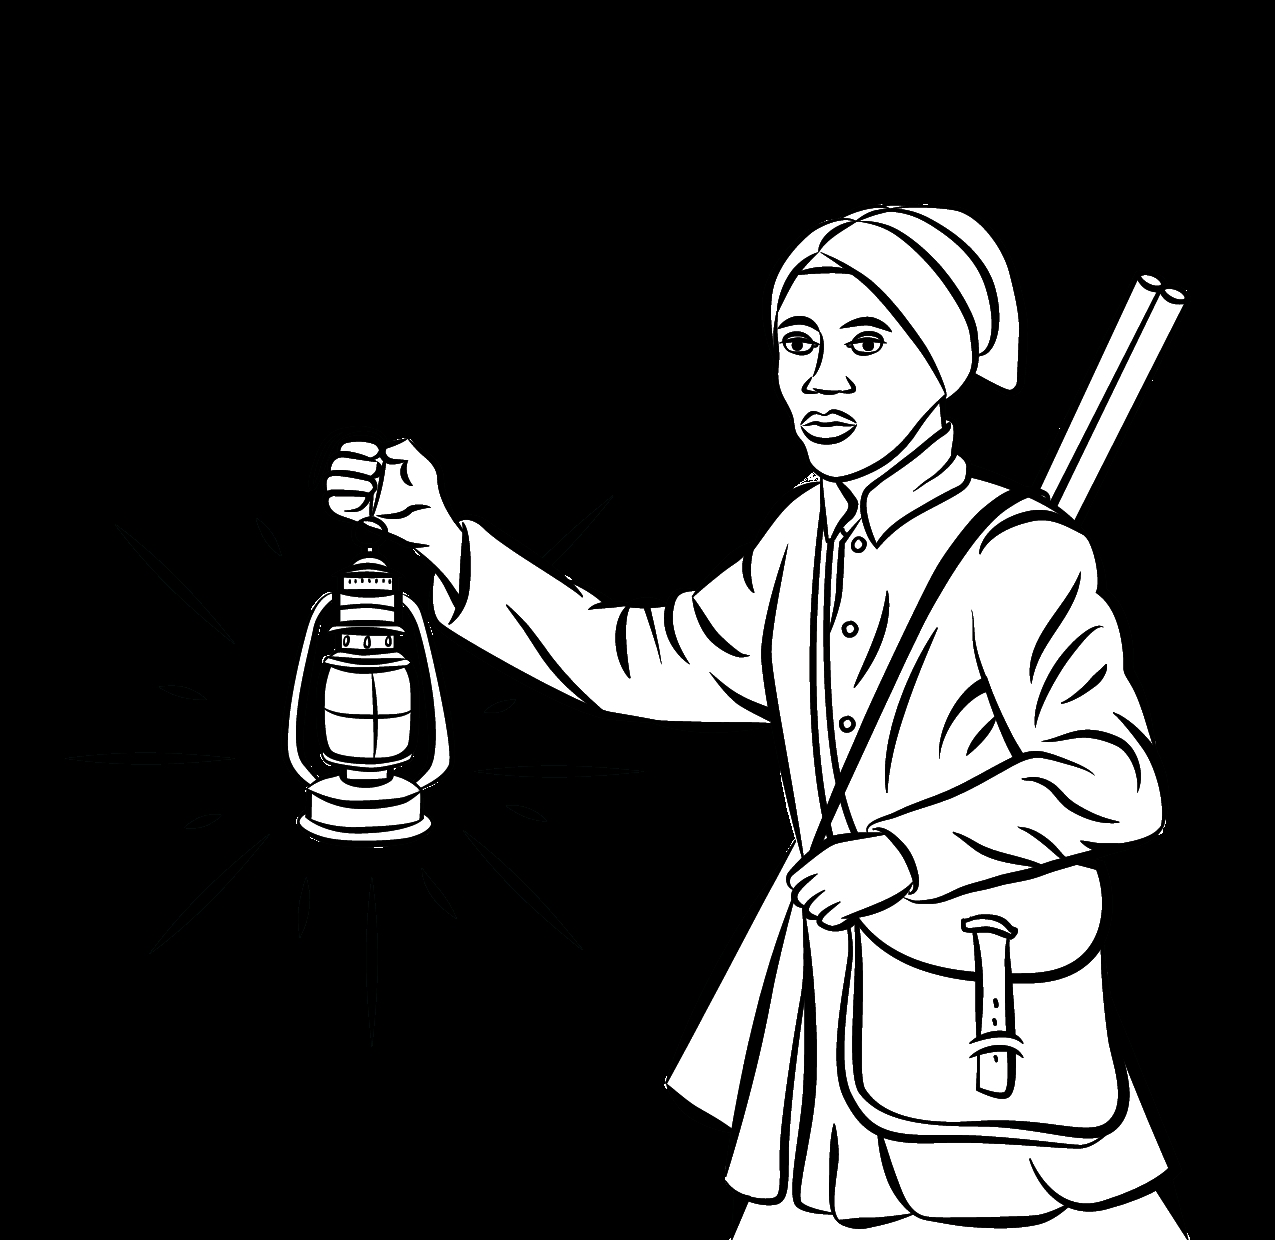 Free coloring pages of harriet tubman - a-k-b.info